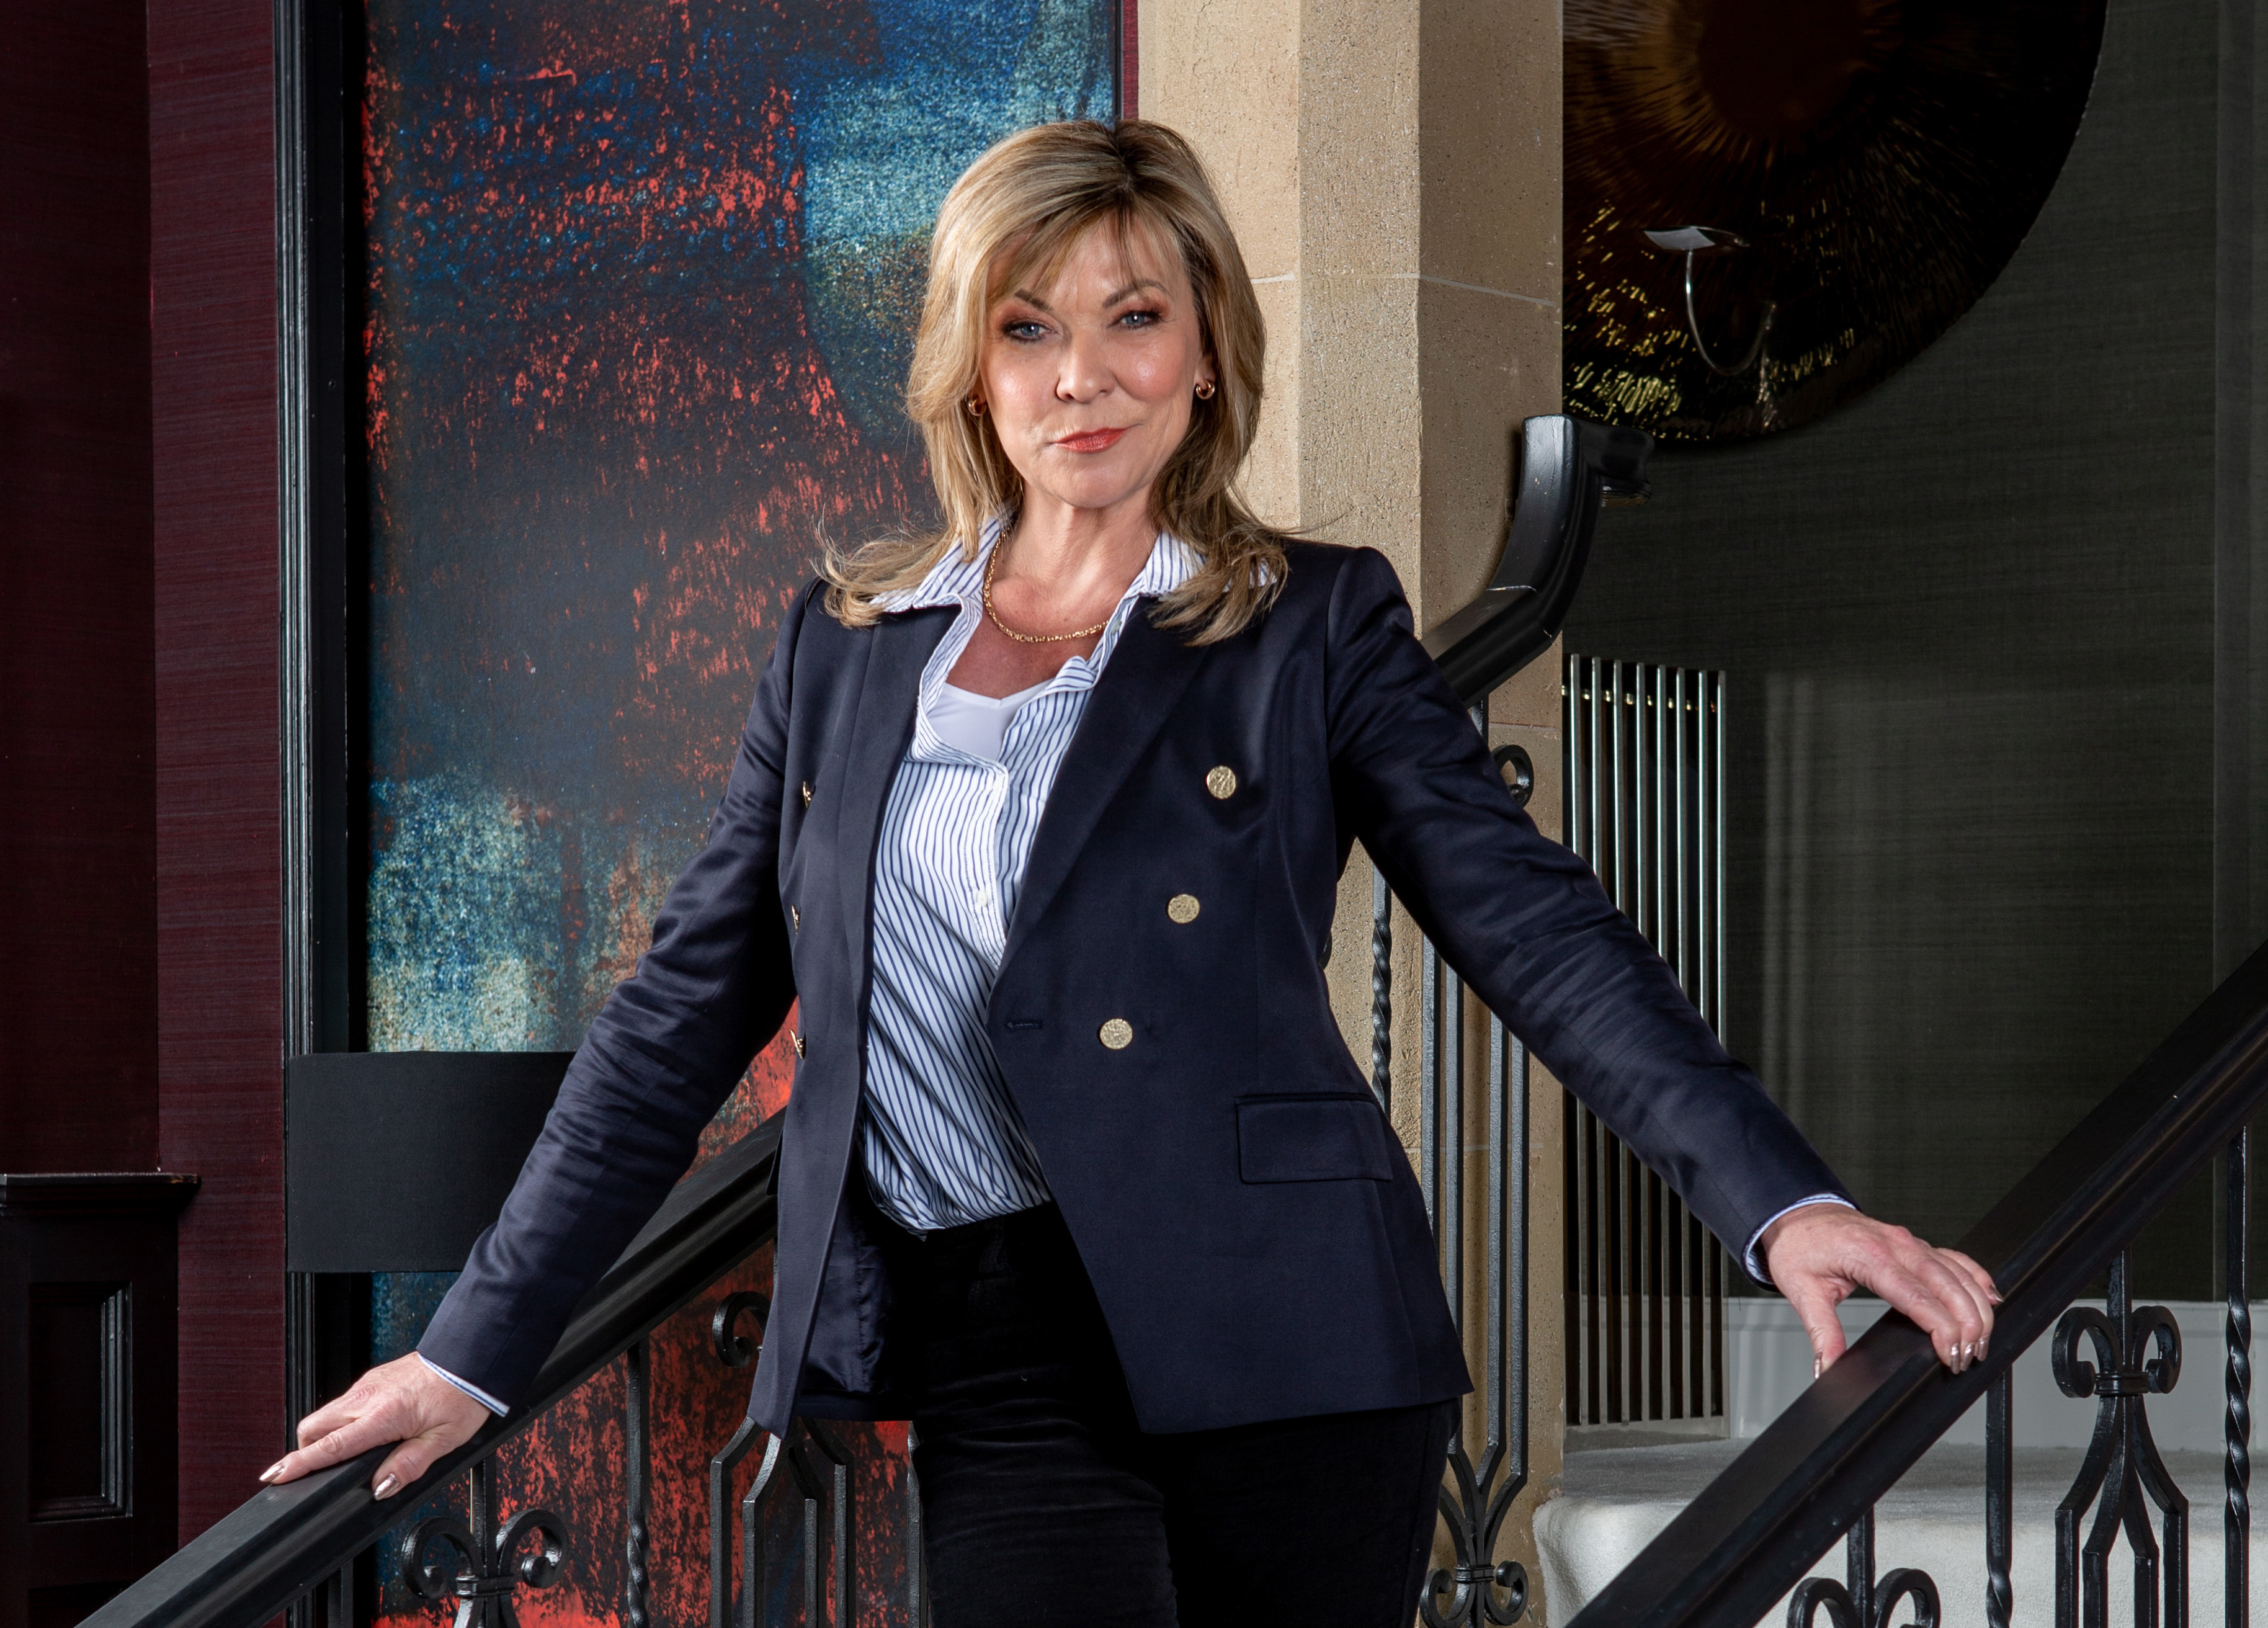 Emmerdale's Claire King promises evil Kim Tate will show softer side amid revenge storyline